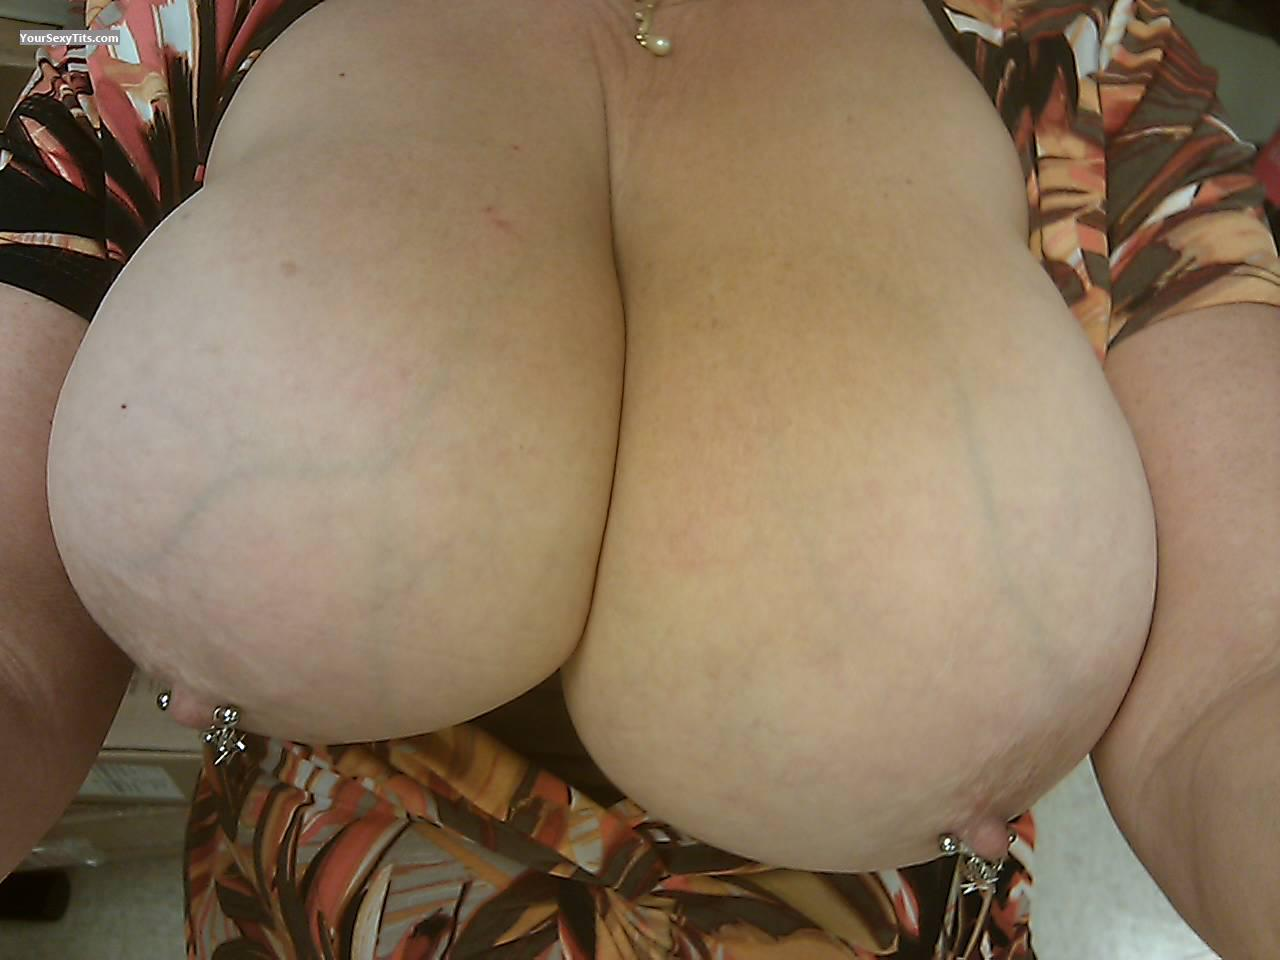 Tit Flash: Big Tits - PIX from United StatesPierced Nipples